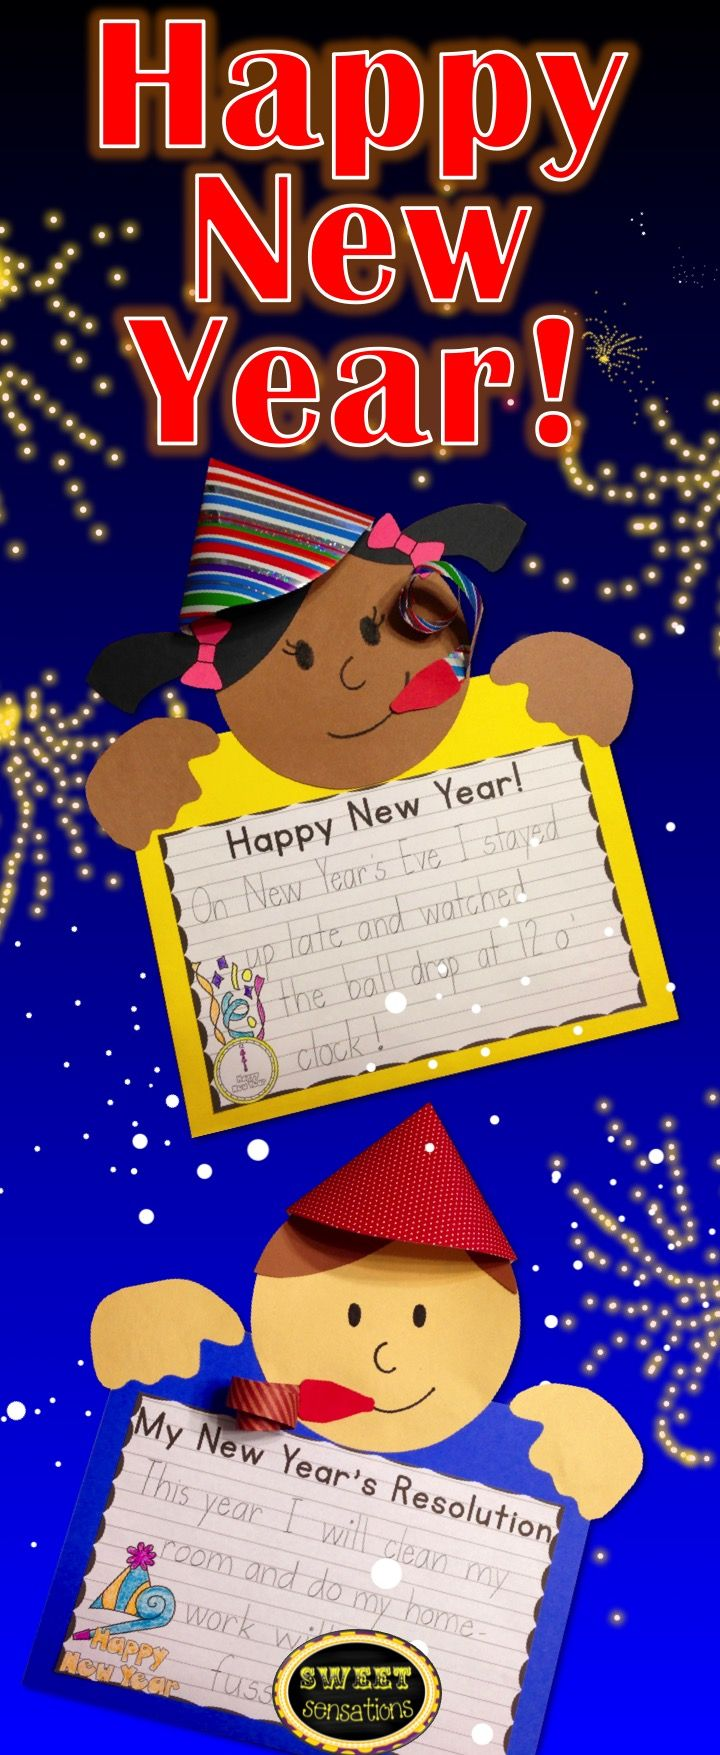 Happy New Year! Students can write their resolutions or about how they celebrated the New Year. Fun activity for the first day back after winter break! $4